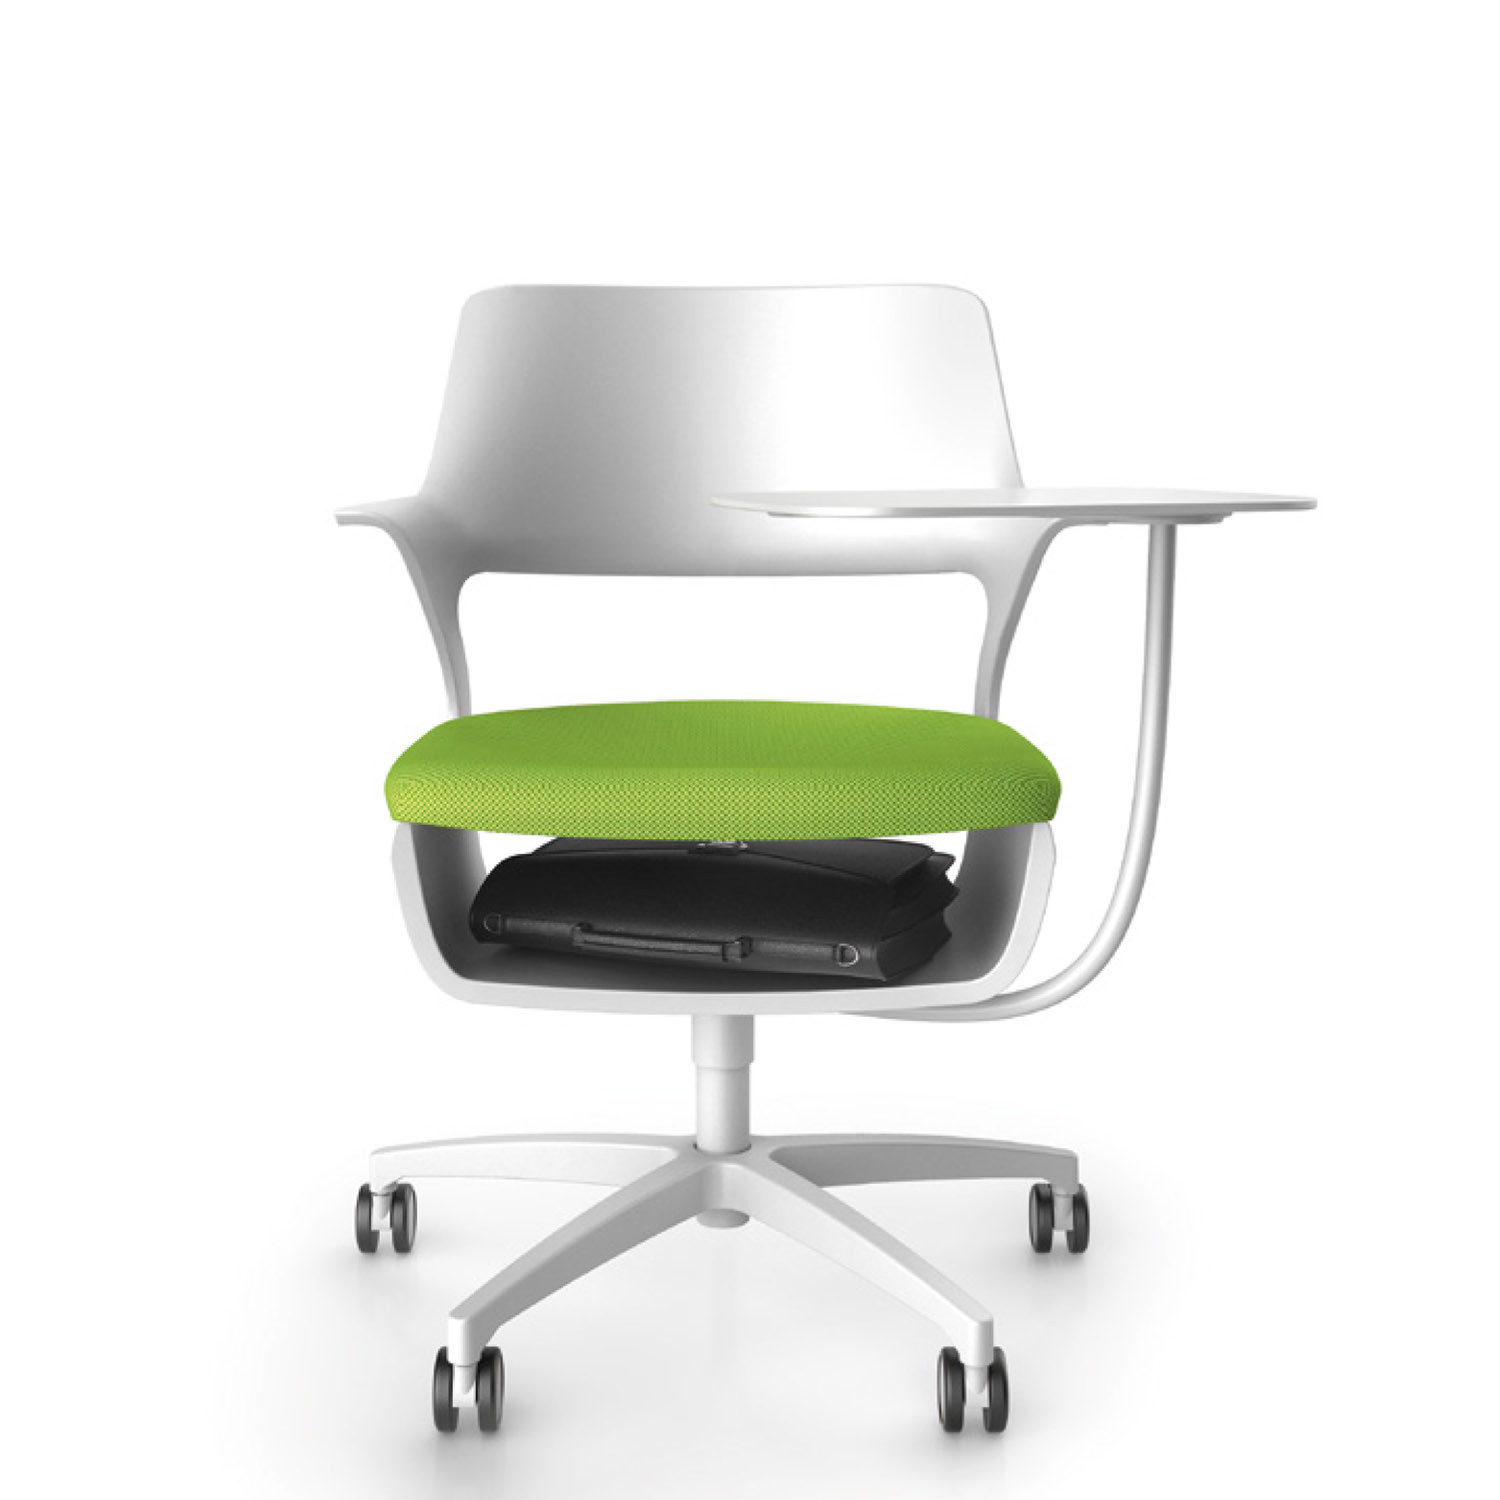 Sharko Swivel Chair and Writing Tablet